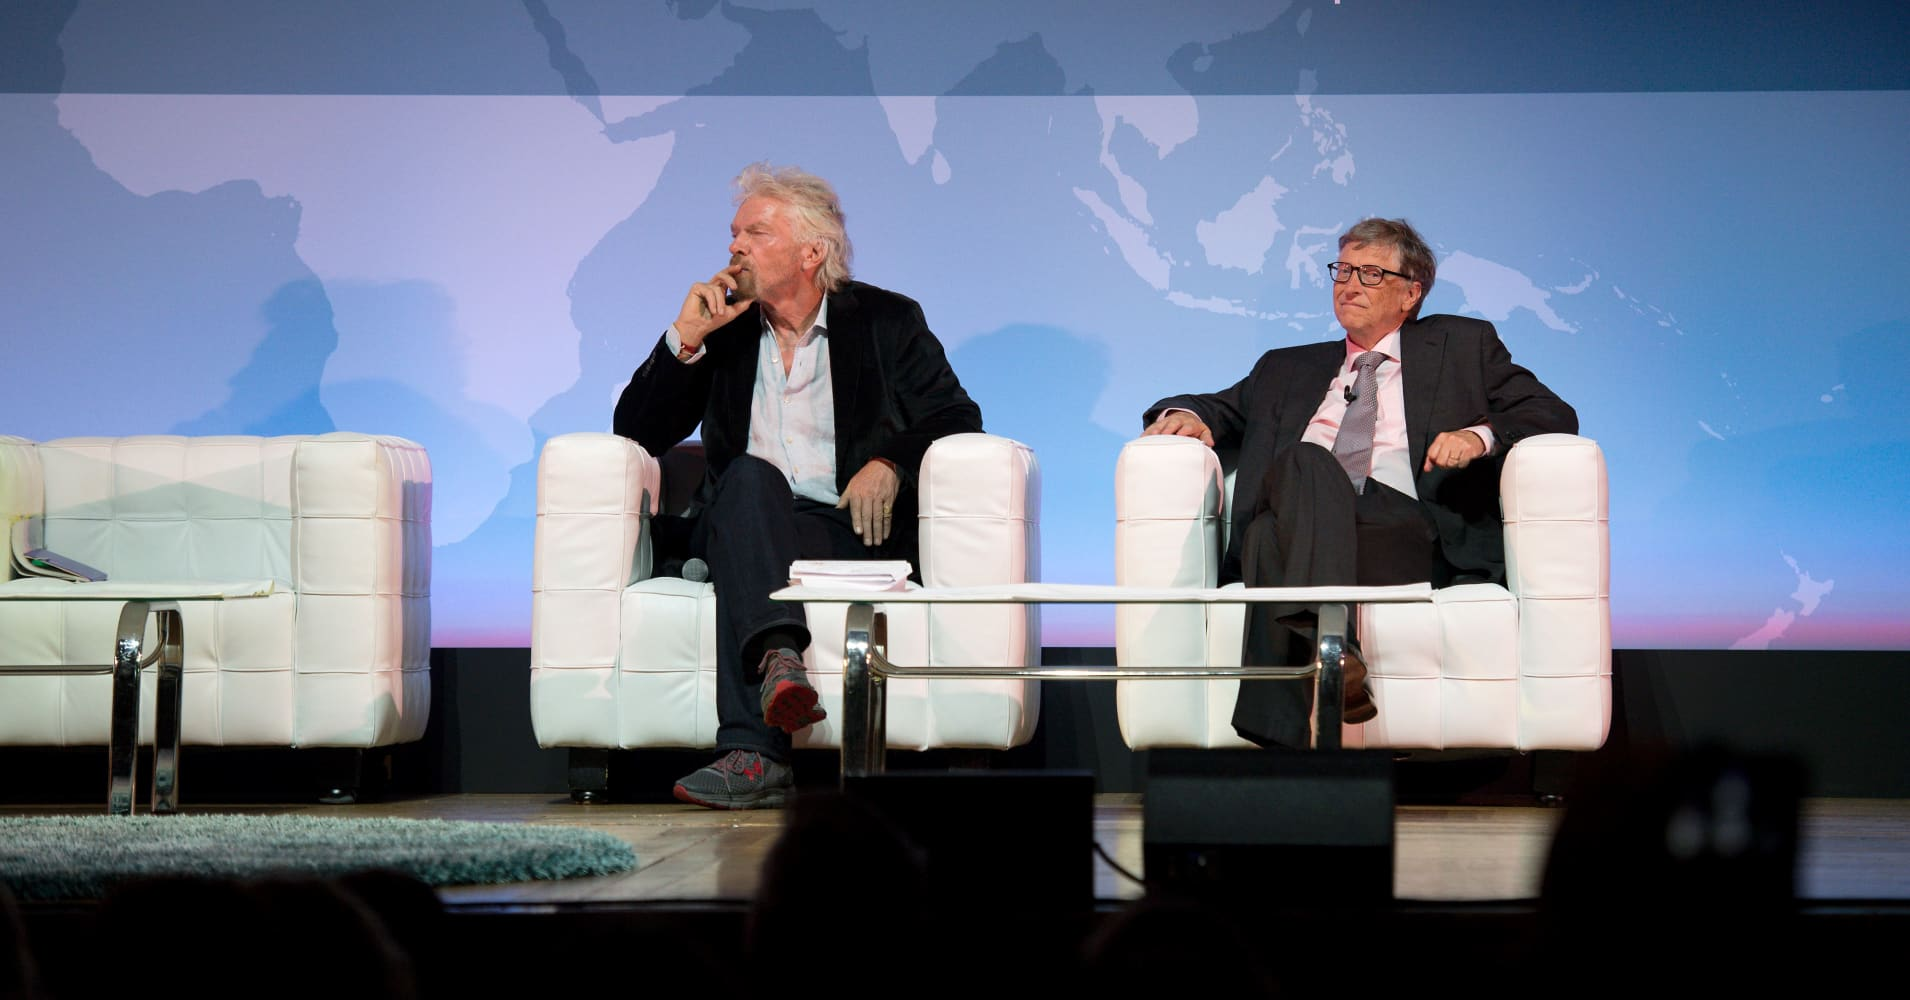 Richard Branson and Bill Gates at the Grand Challenges meeting in London on October 26, 2016.